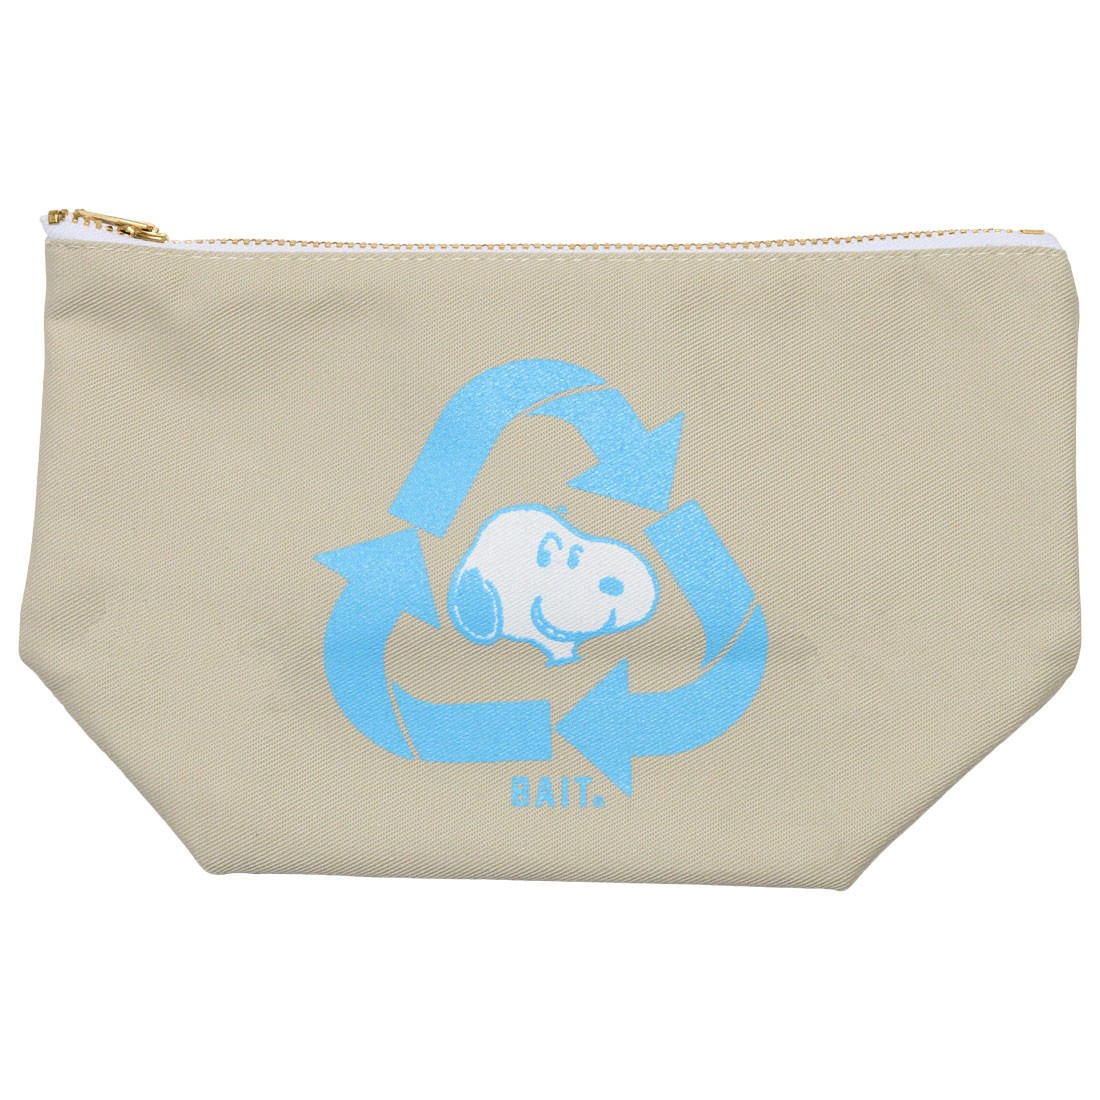 BAIT x Snoopy Recycle Large Zip Bag (gray / stone)